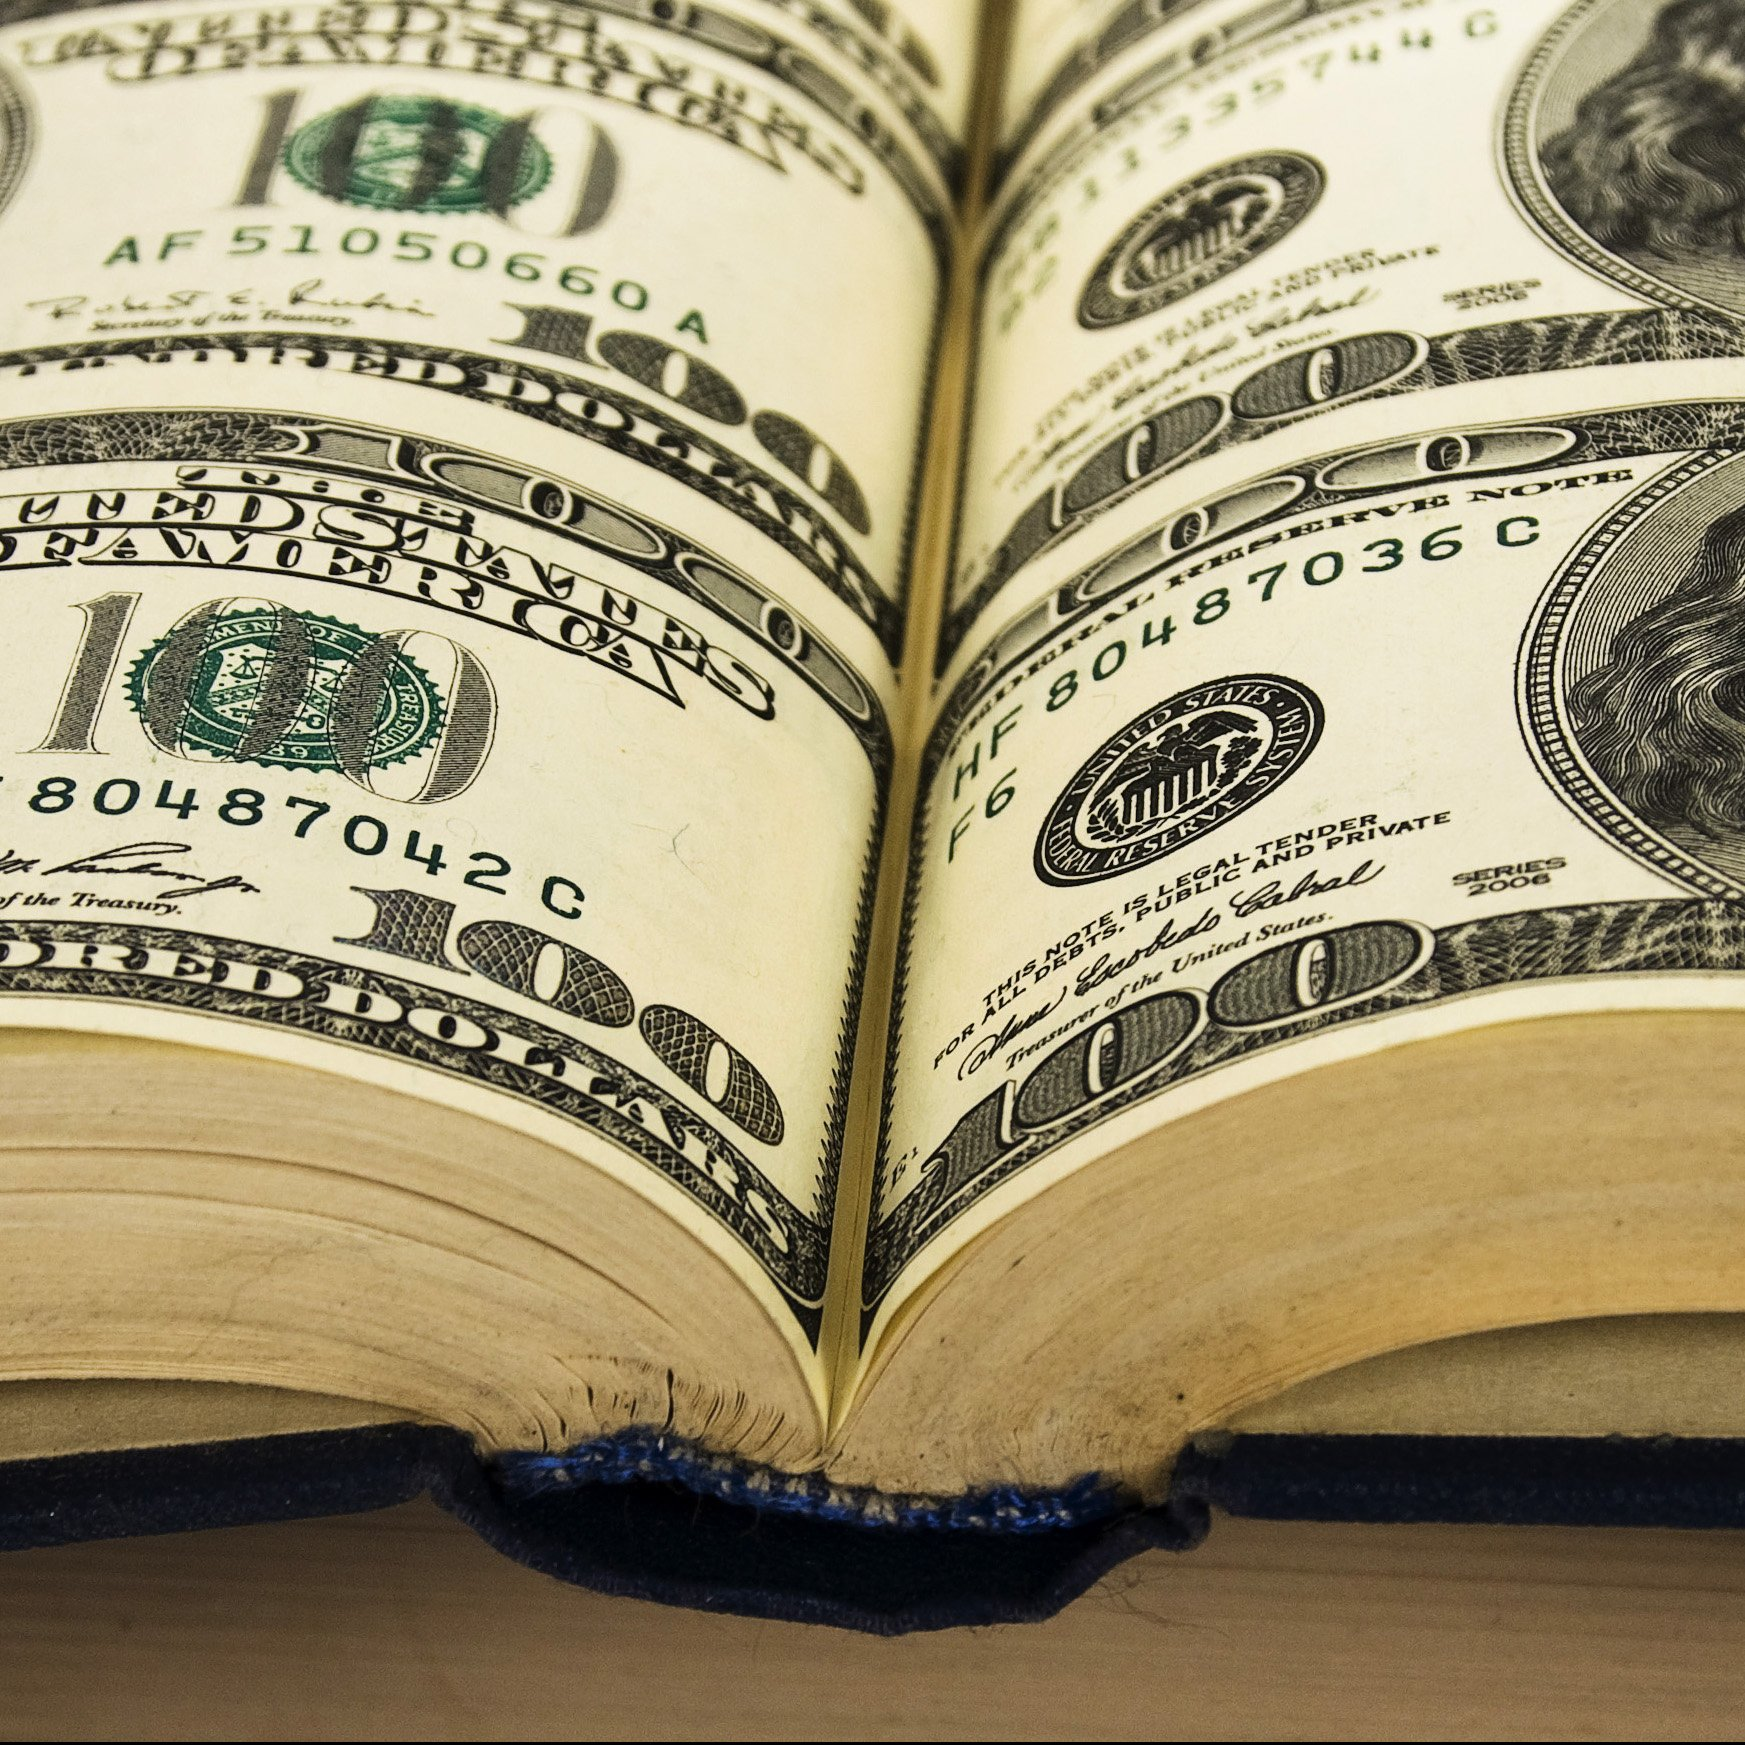 The types of books self-made millionaires read to increase their wealth https://t.co/SqmtptoOmj